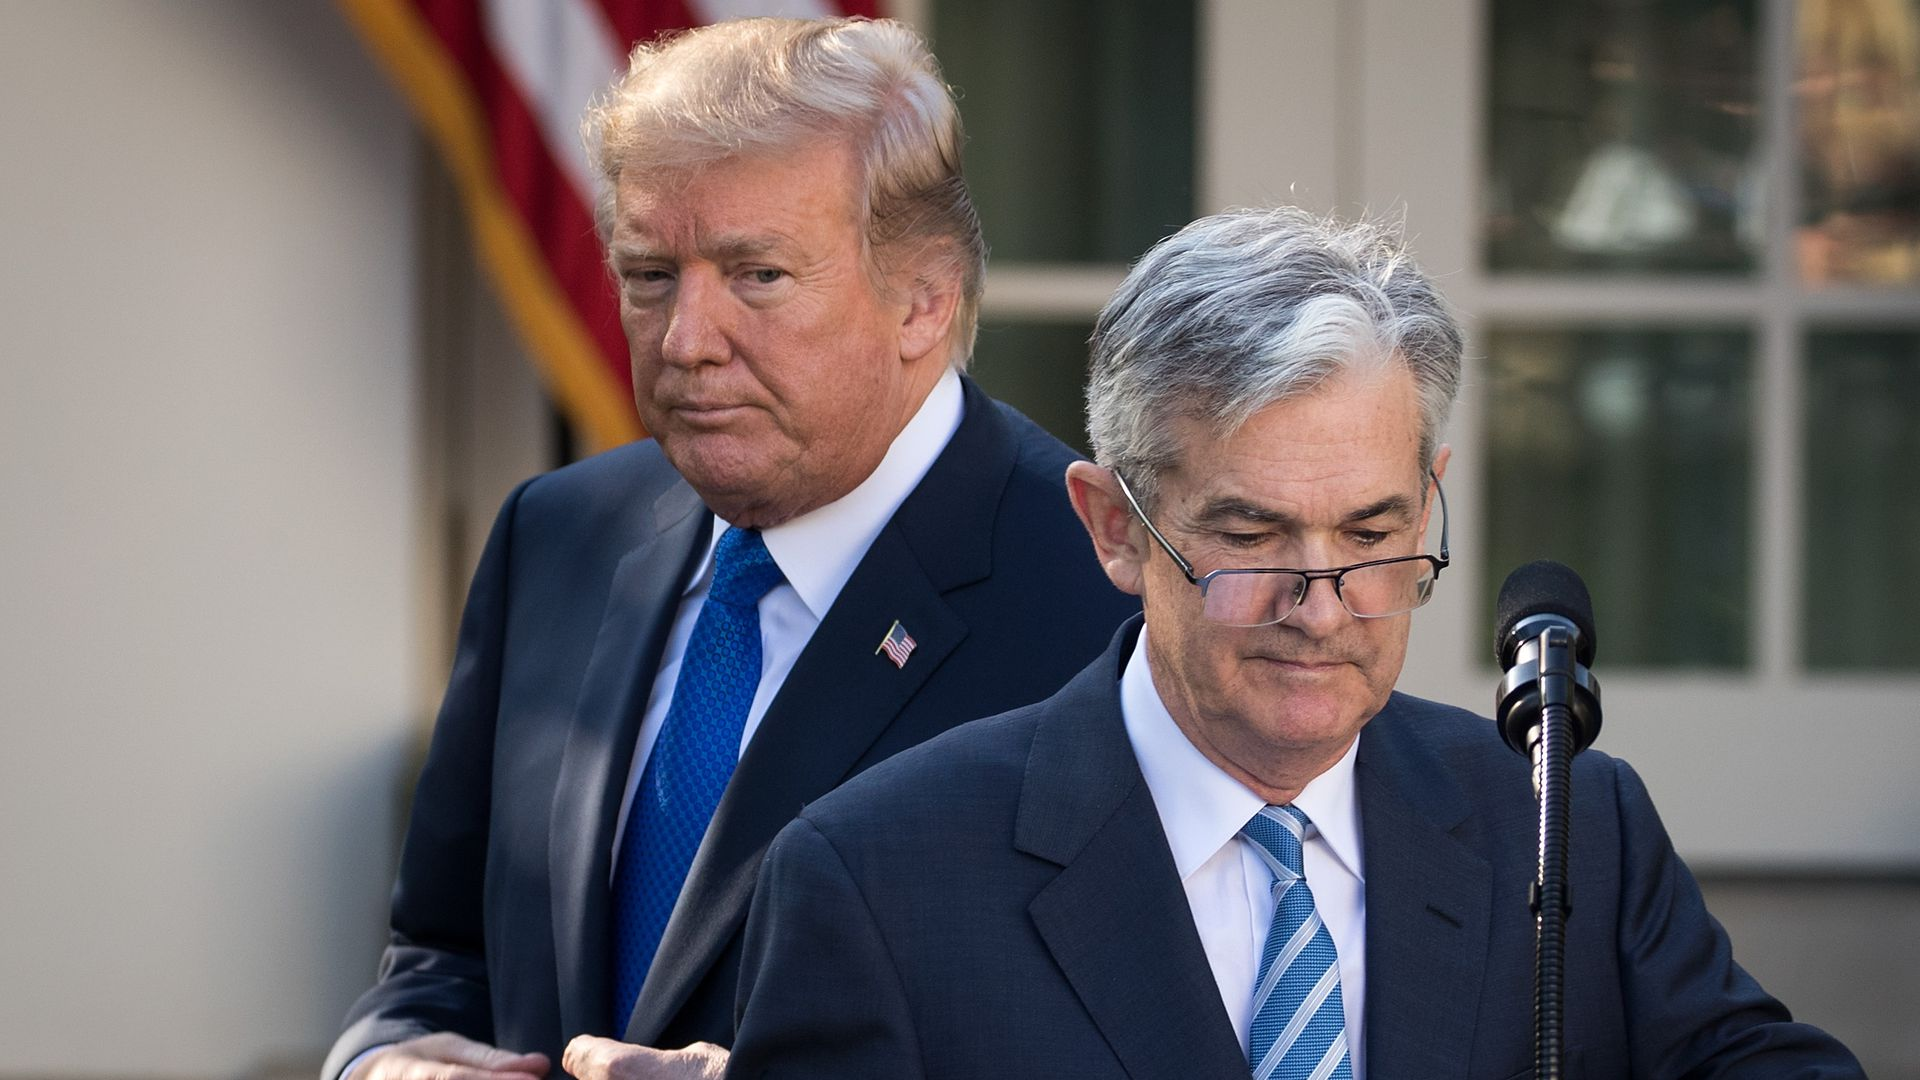 U.S. President Donald Trump looks on as Federal Reserve Jerome Powell takes to the podium during a press event in the Rose Garden at the White House, November 2, 2017 in Washington, DC.